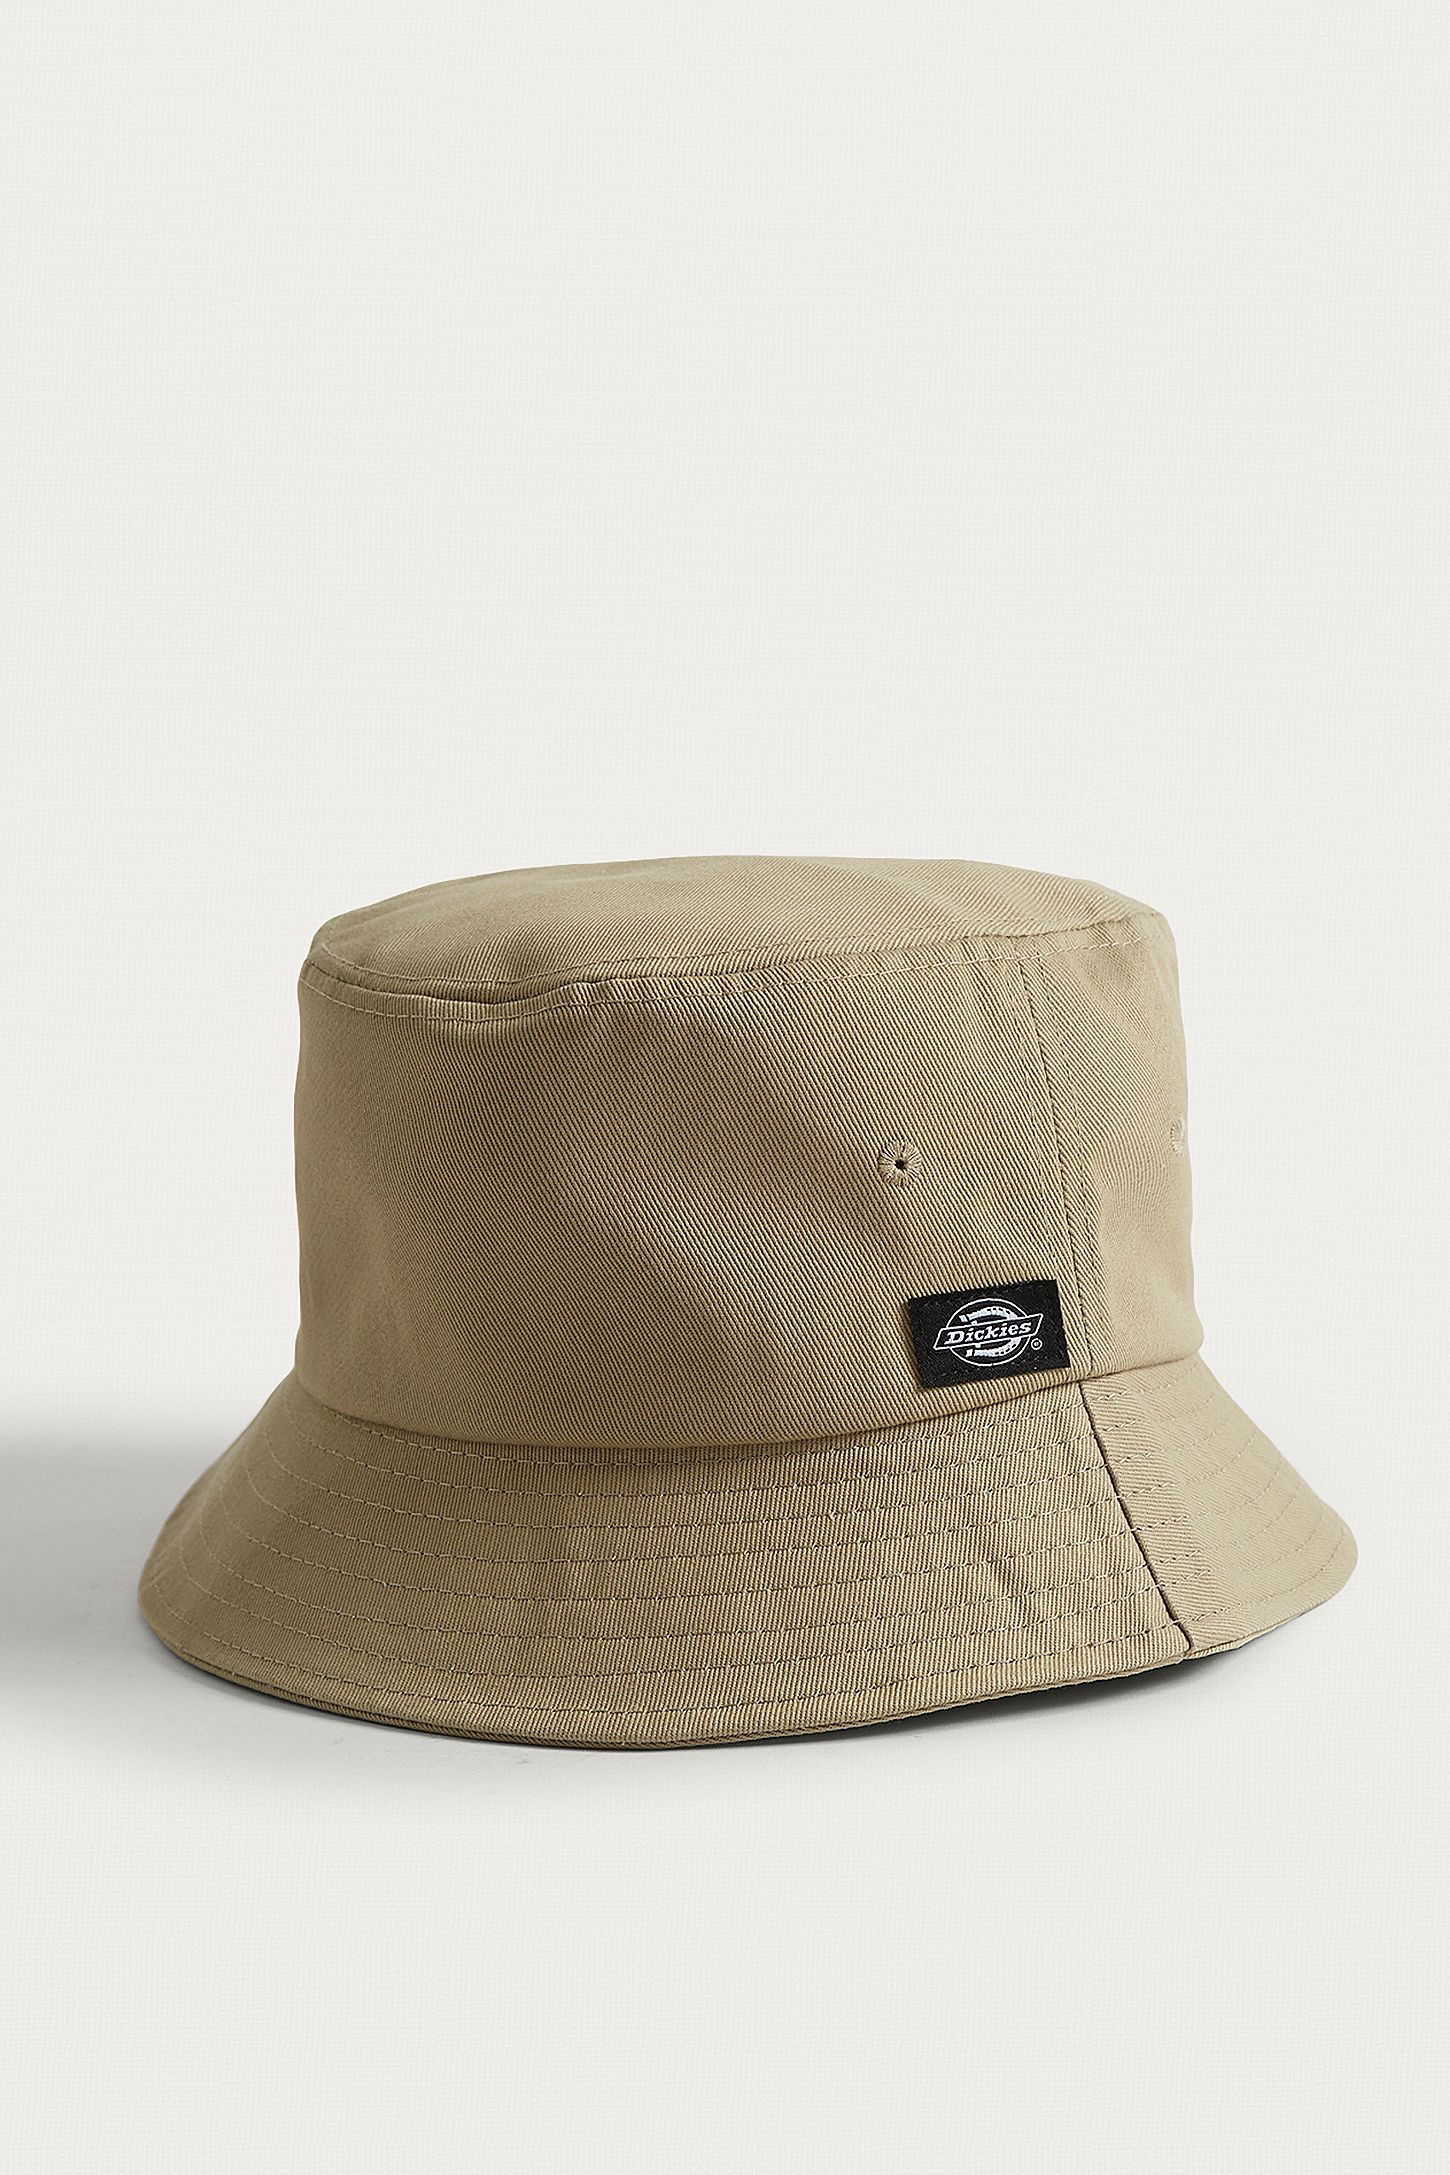 Dickies Addison Khaki Bucket Hat  6418c93361d